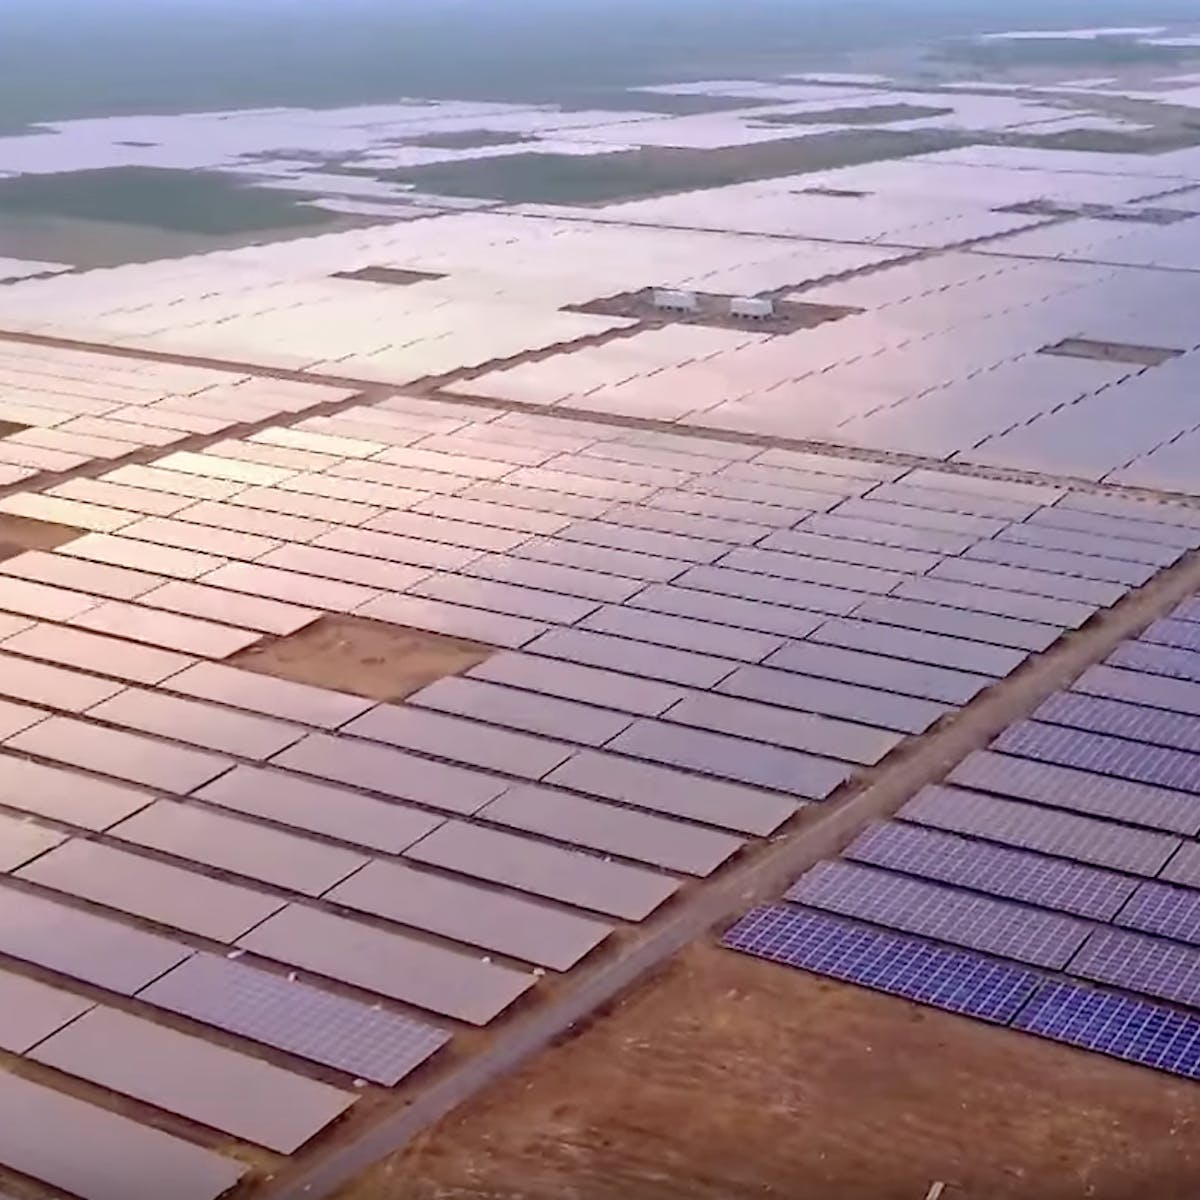 Photos Show the World's Largest Solar Plant in India